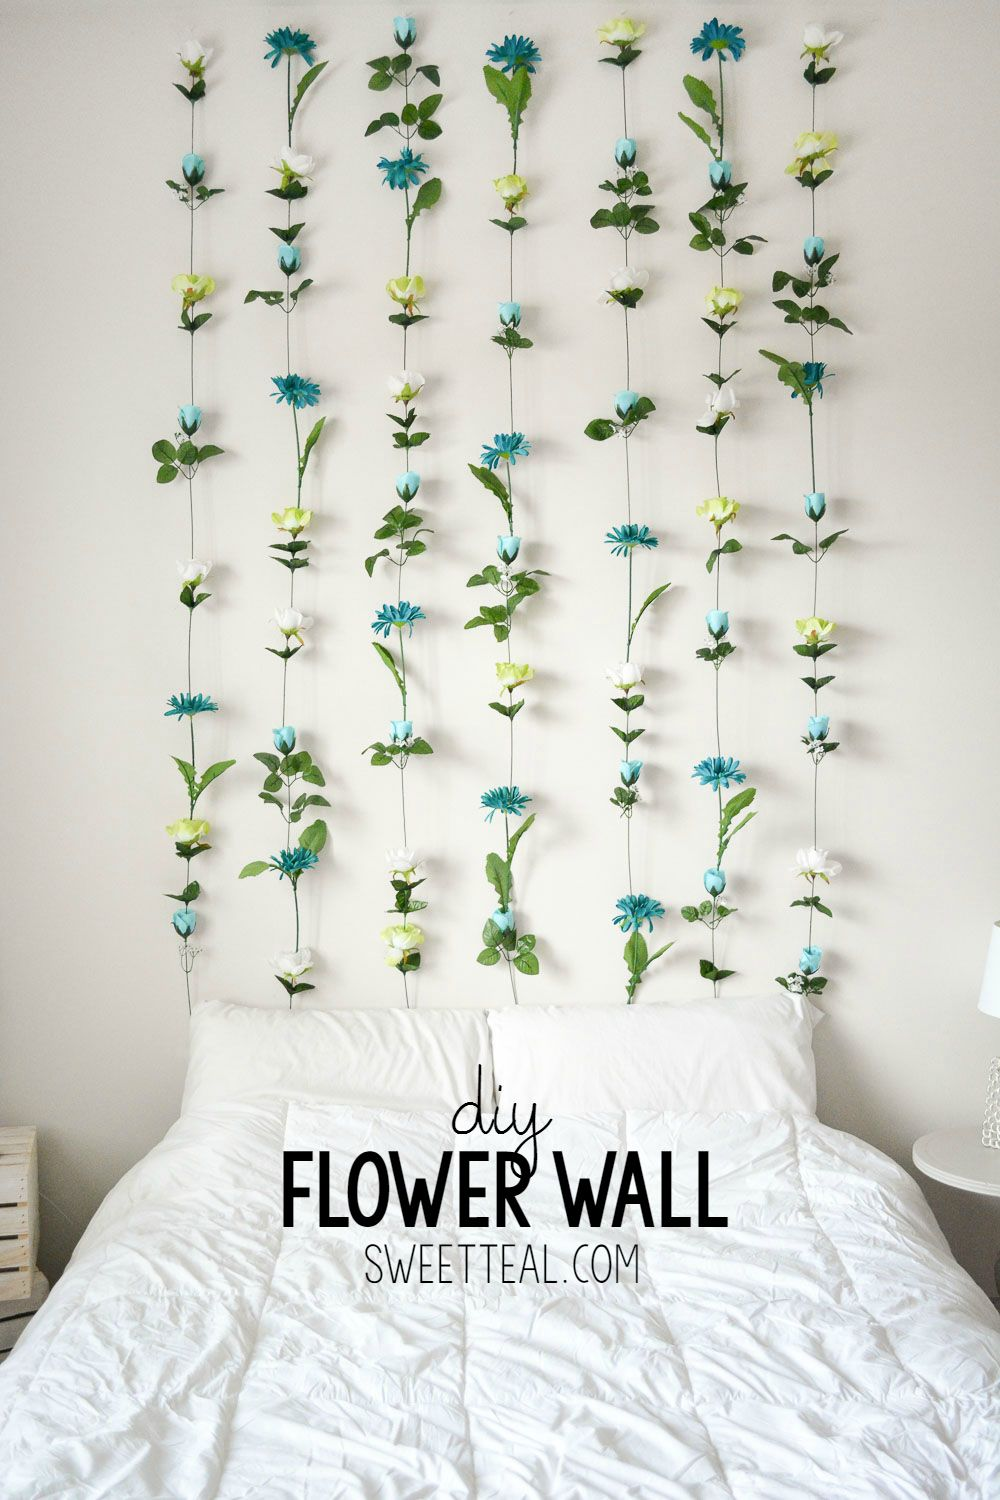 Diy Flower Wall Headboard Home Decor Pinterest Wall Headboard Diy Headboards And Diy